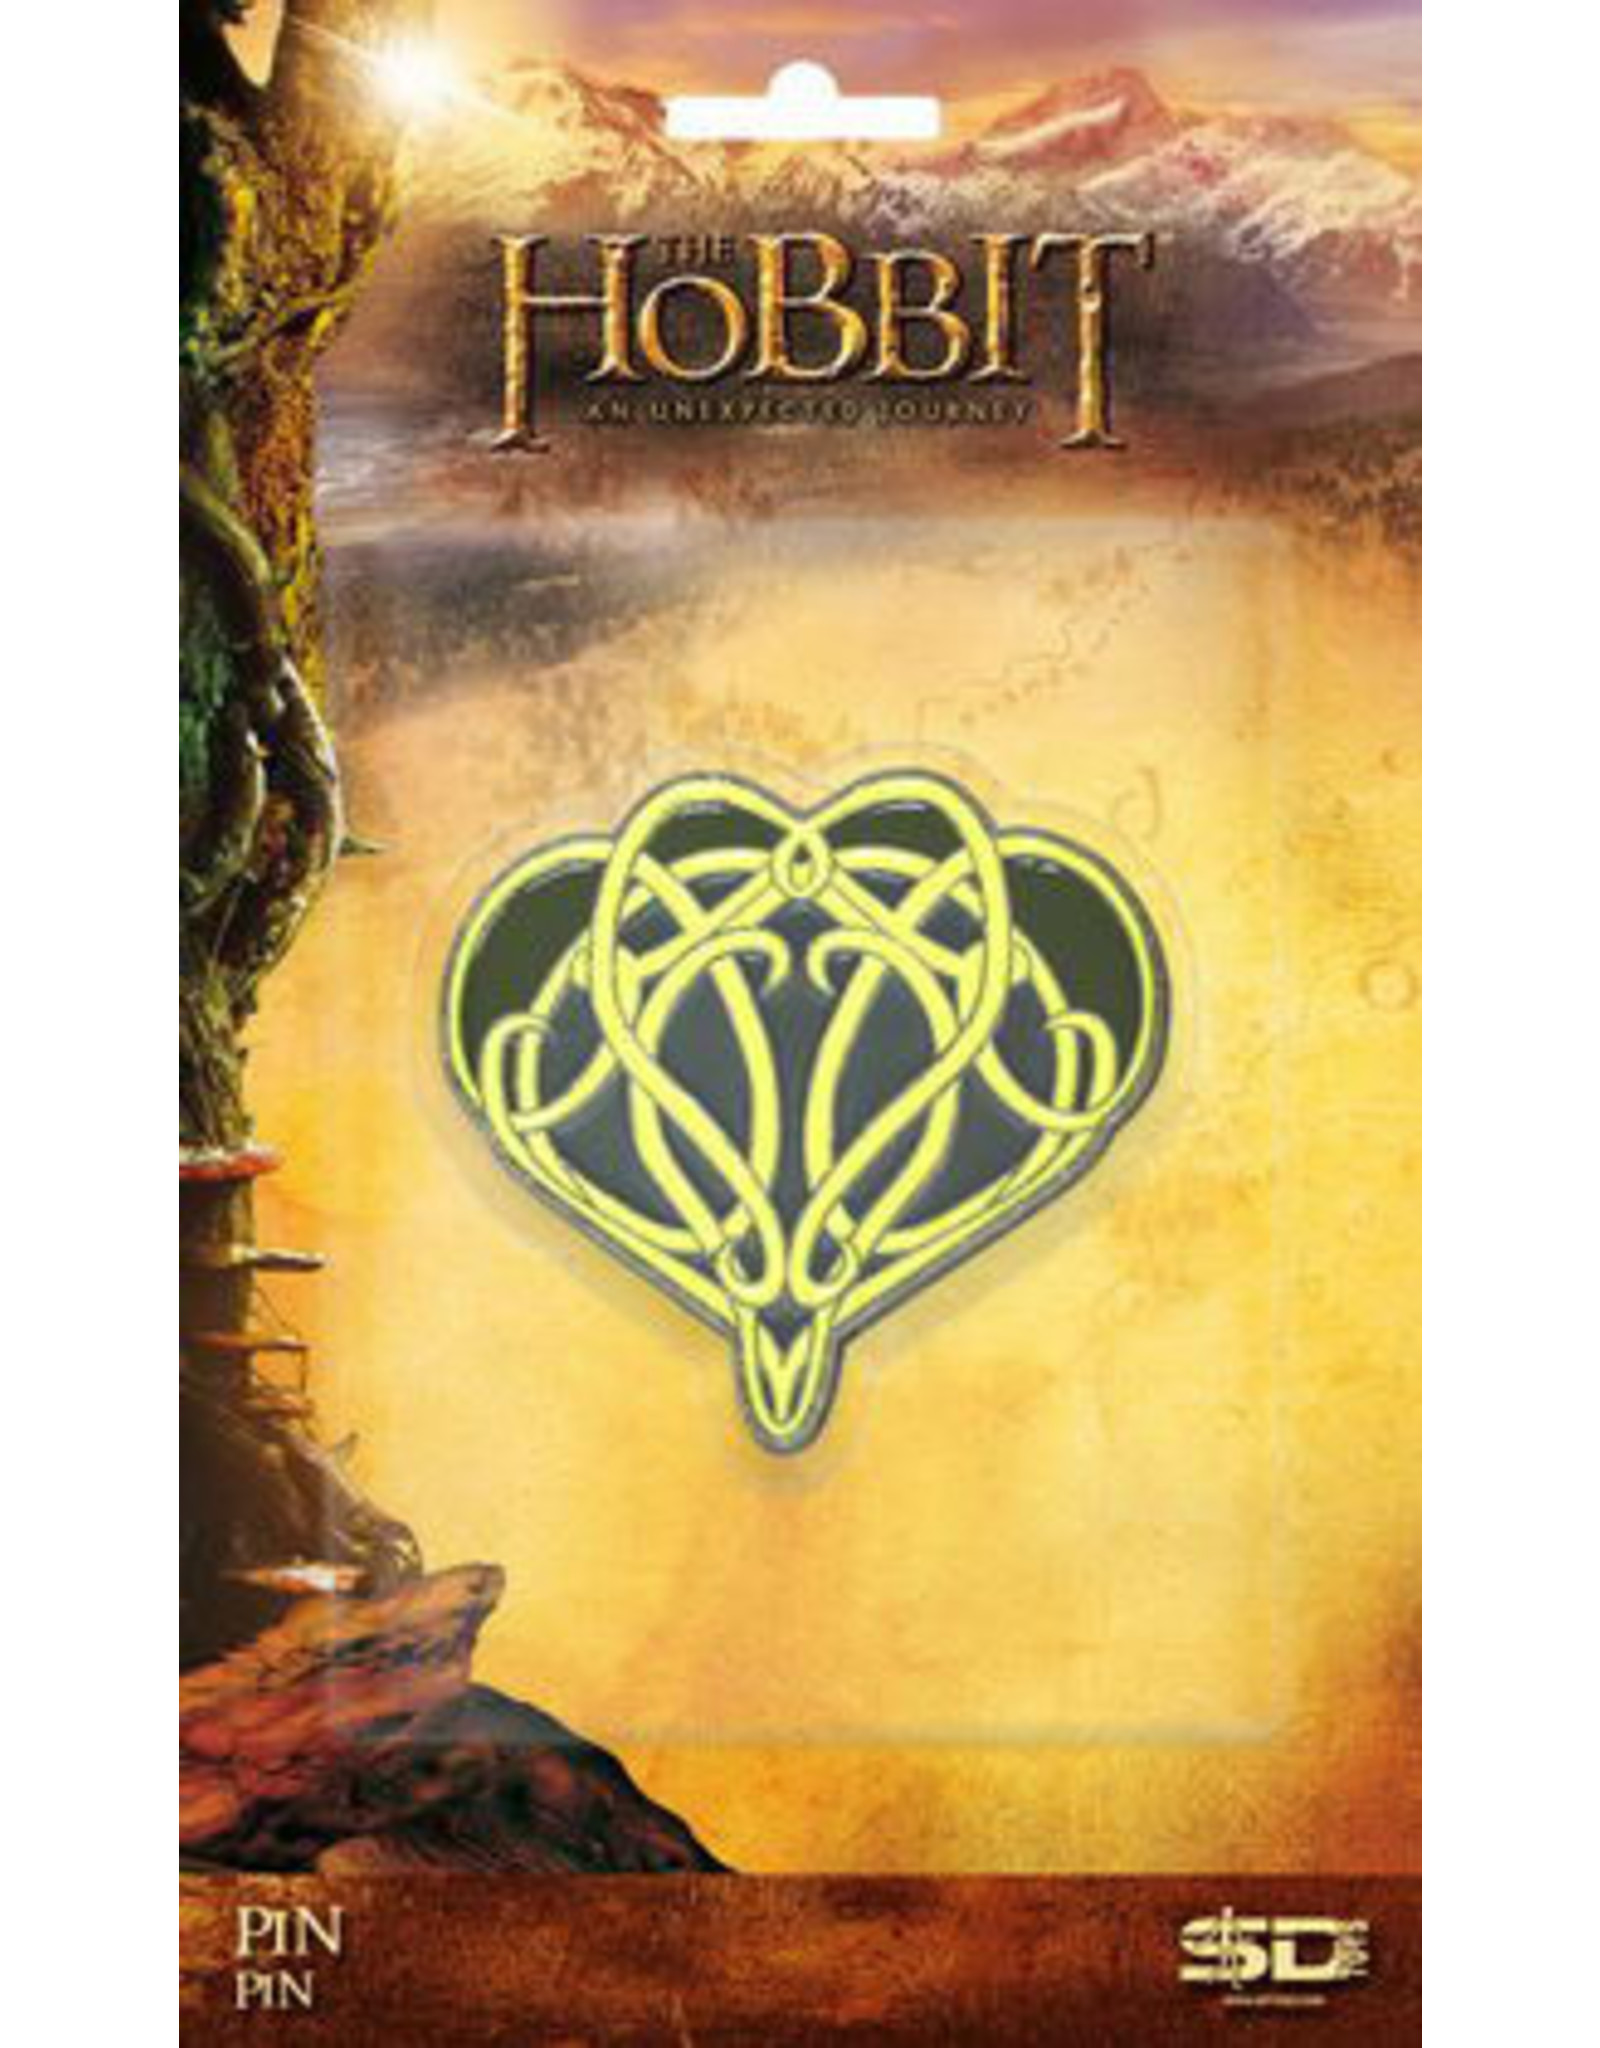 SD Toys THE HOBBIT Pin Badge 5cm - Elrond